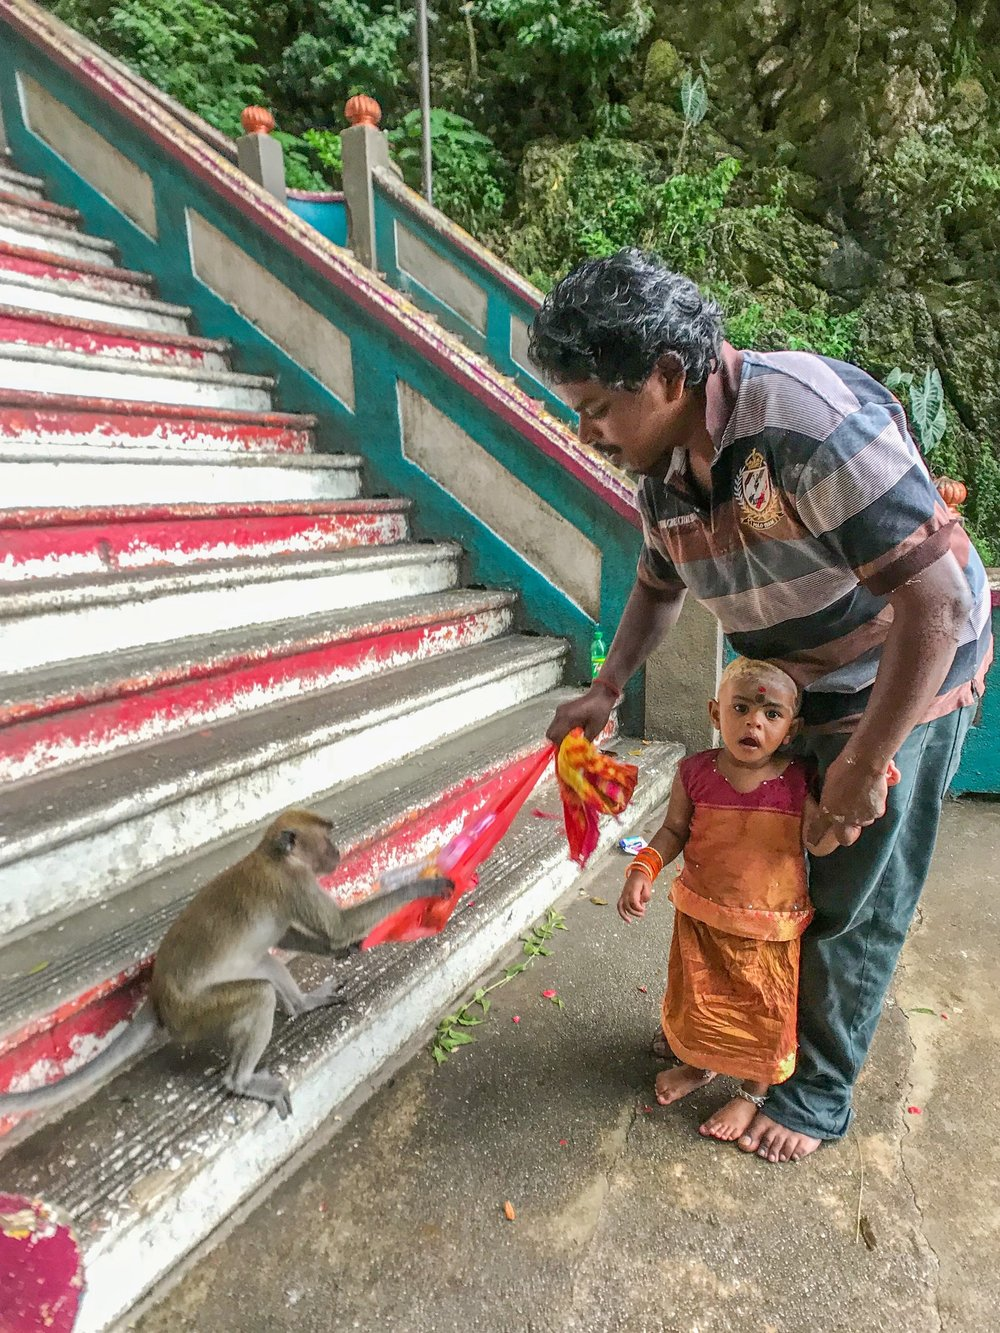 Batu Caves monkeys strike again